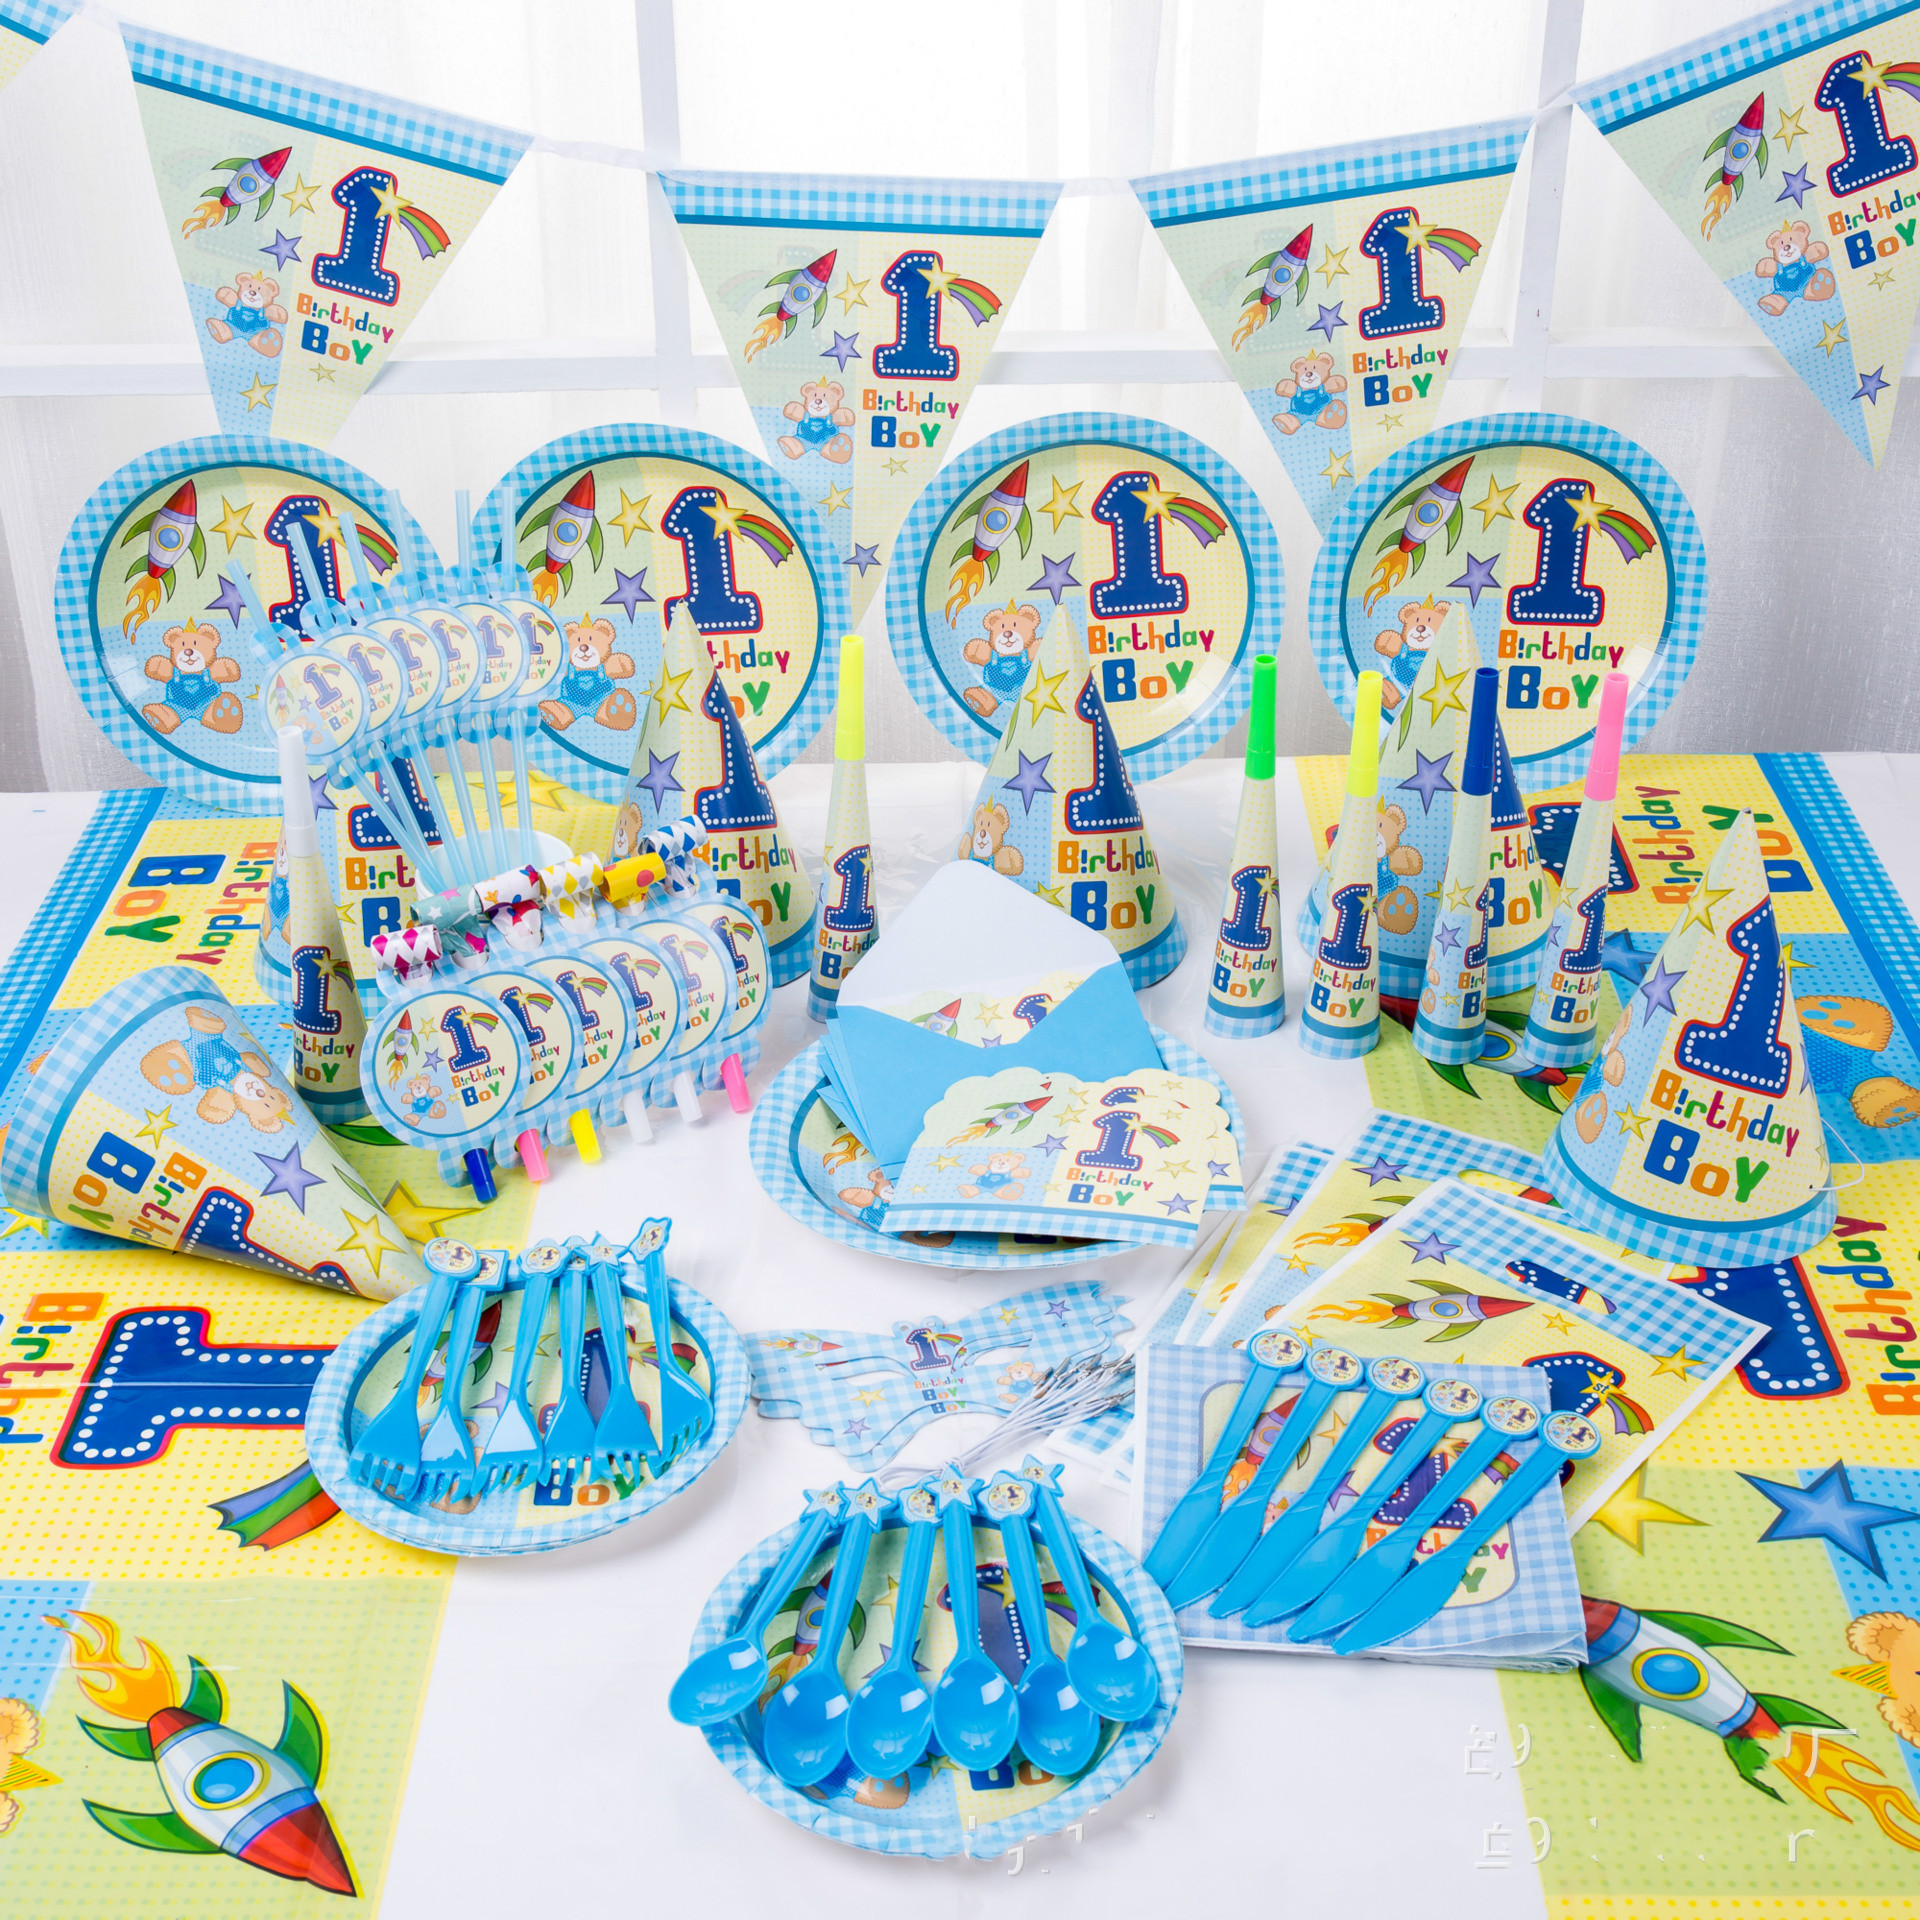 Baby Party Supplies Set 6 People 1 Year Old Bear Theme Birthday Party Supplies Set Baby Gift Child Kids Boys Party Supplies Set